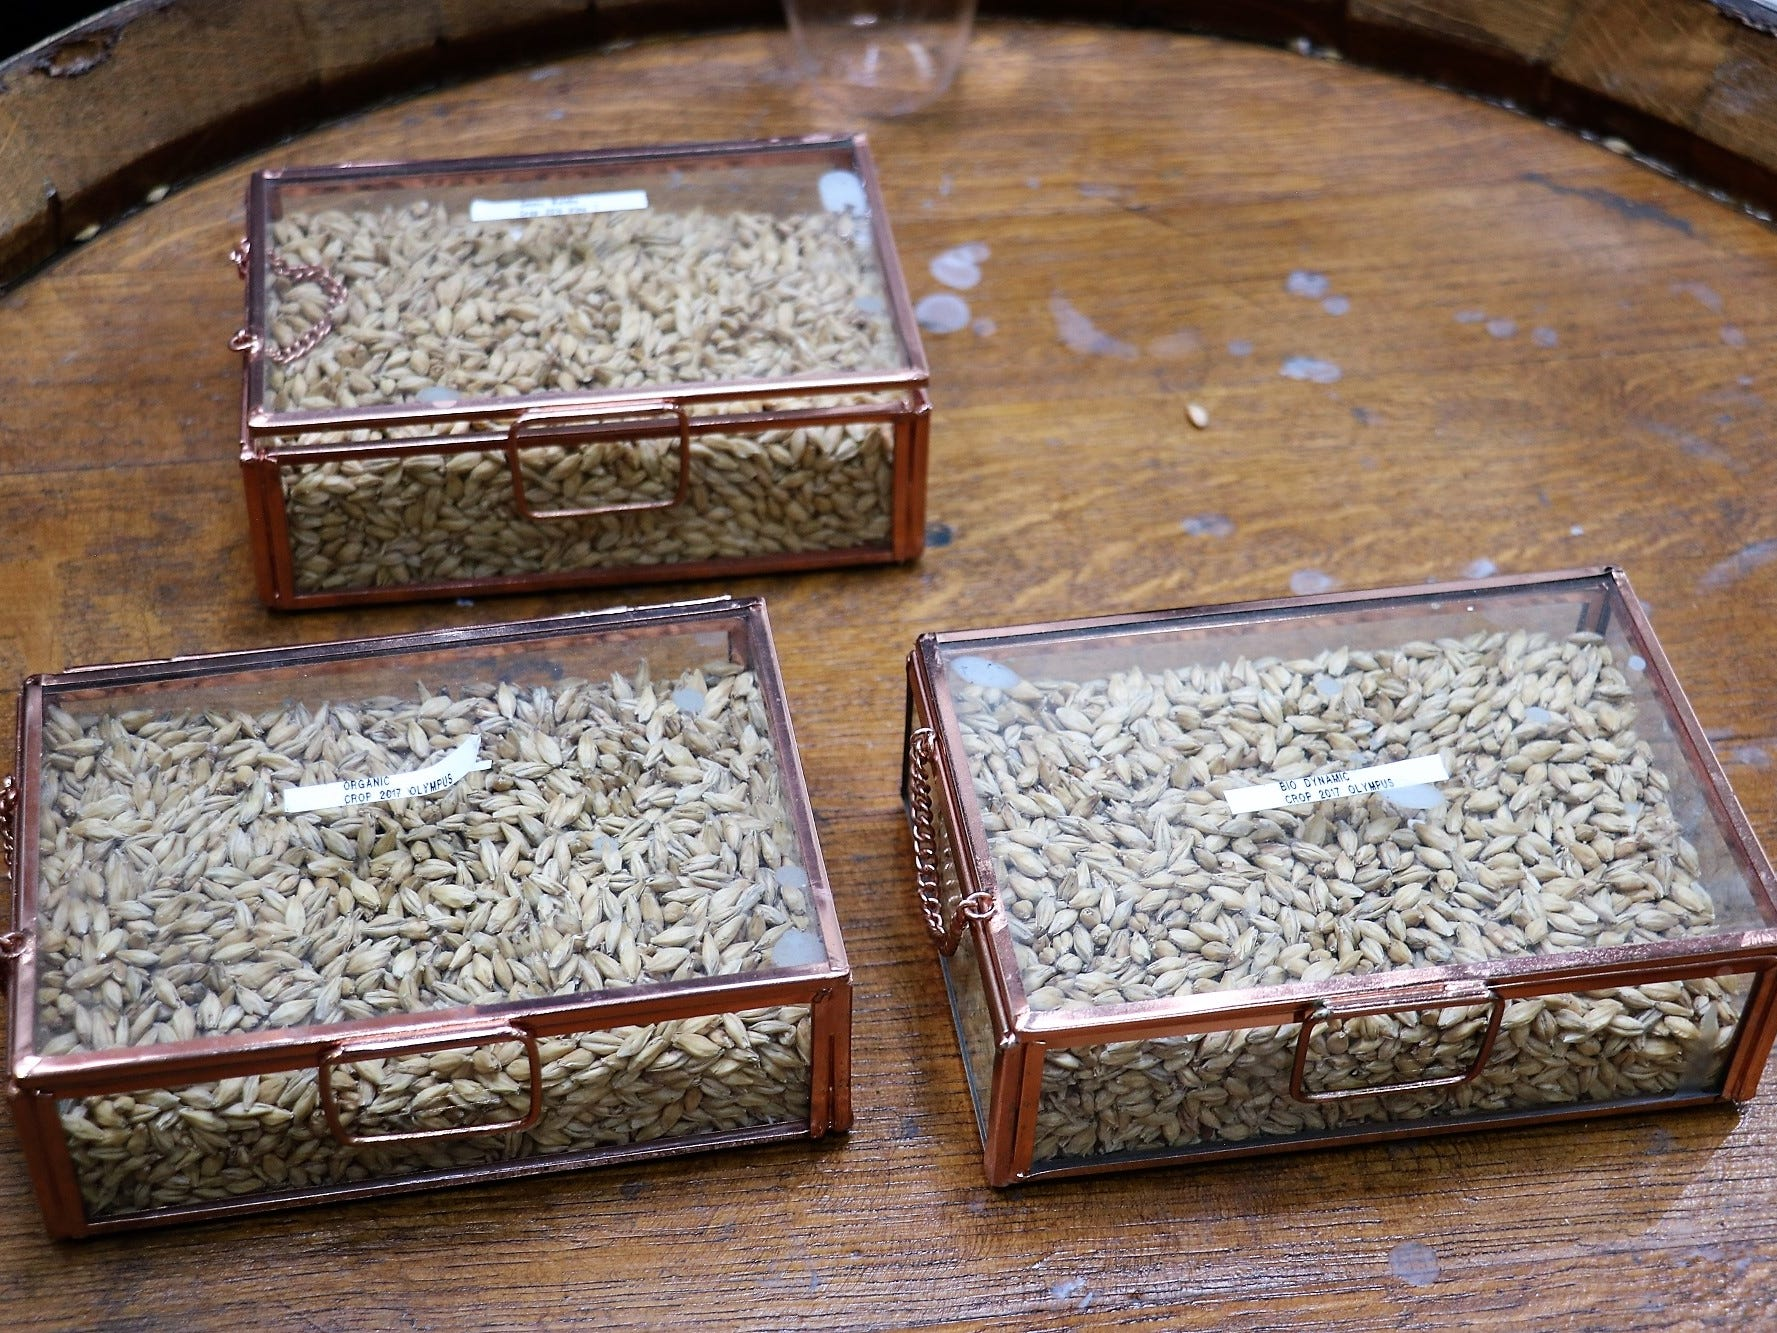 A collection of barley samples, including organic and biodynamic barley, is kept on display. The distillery retains samples of every batch of barley used for production so far.